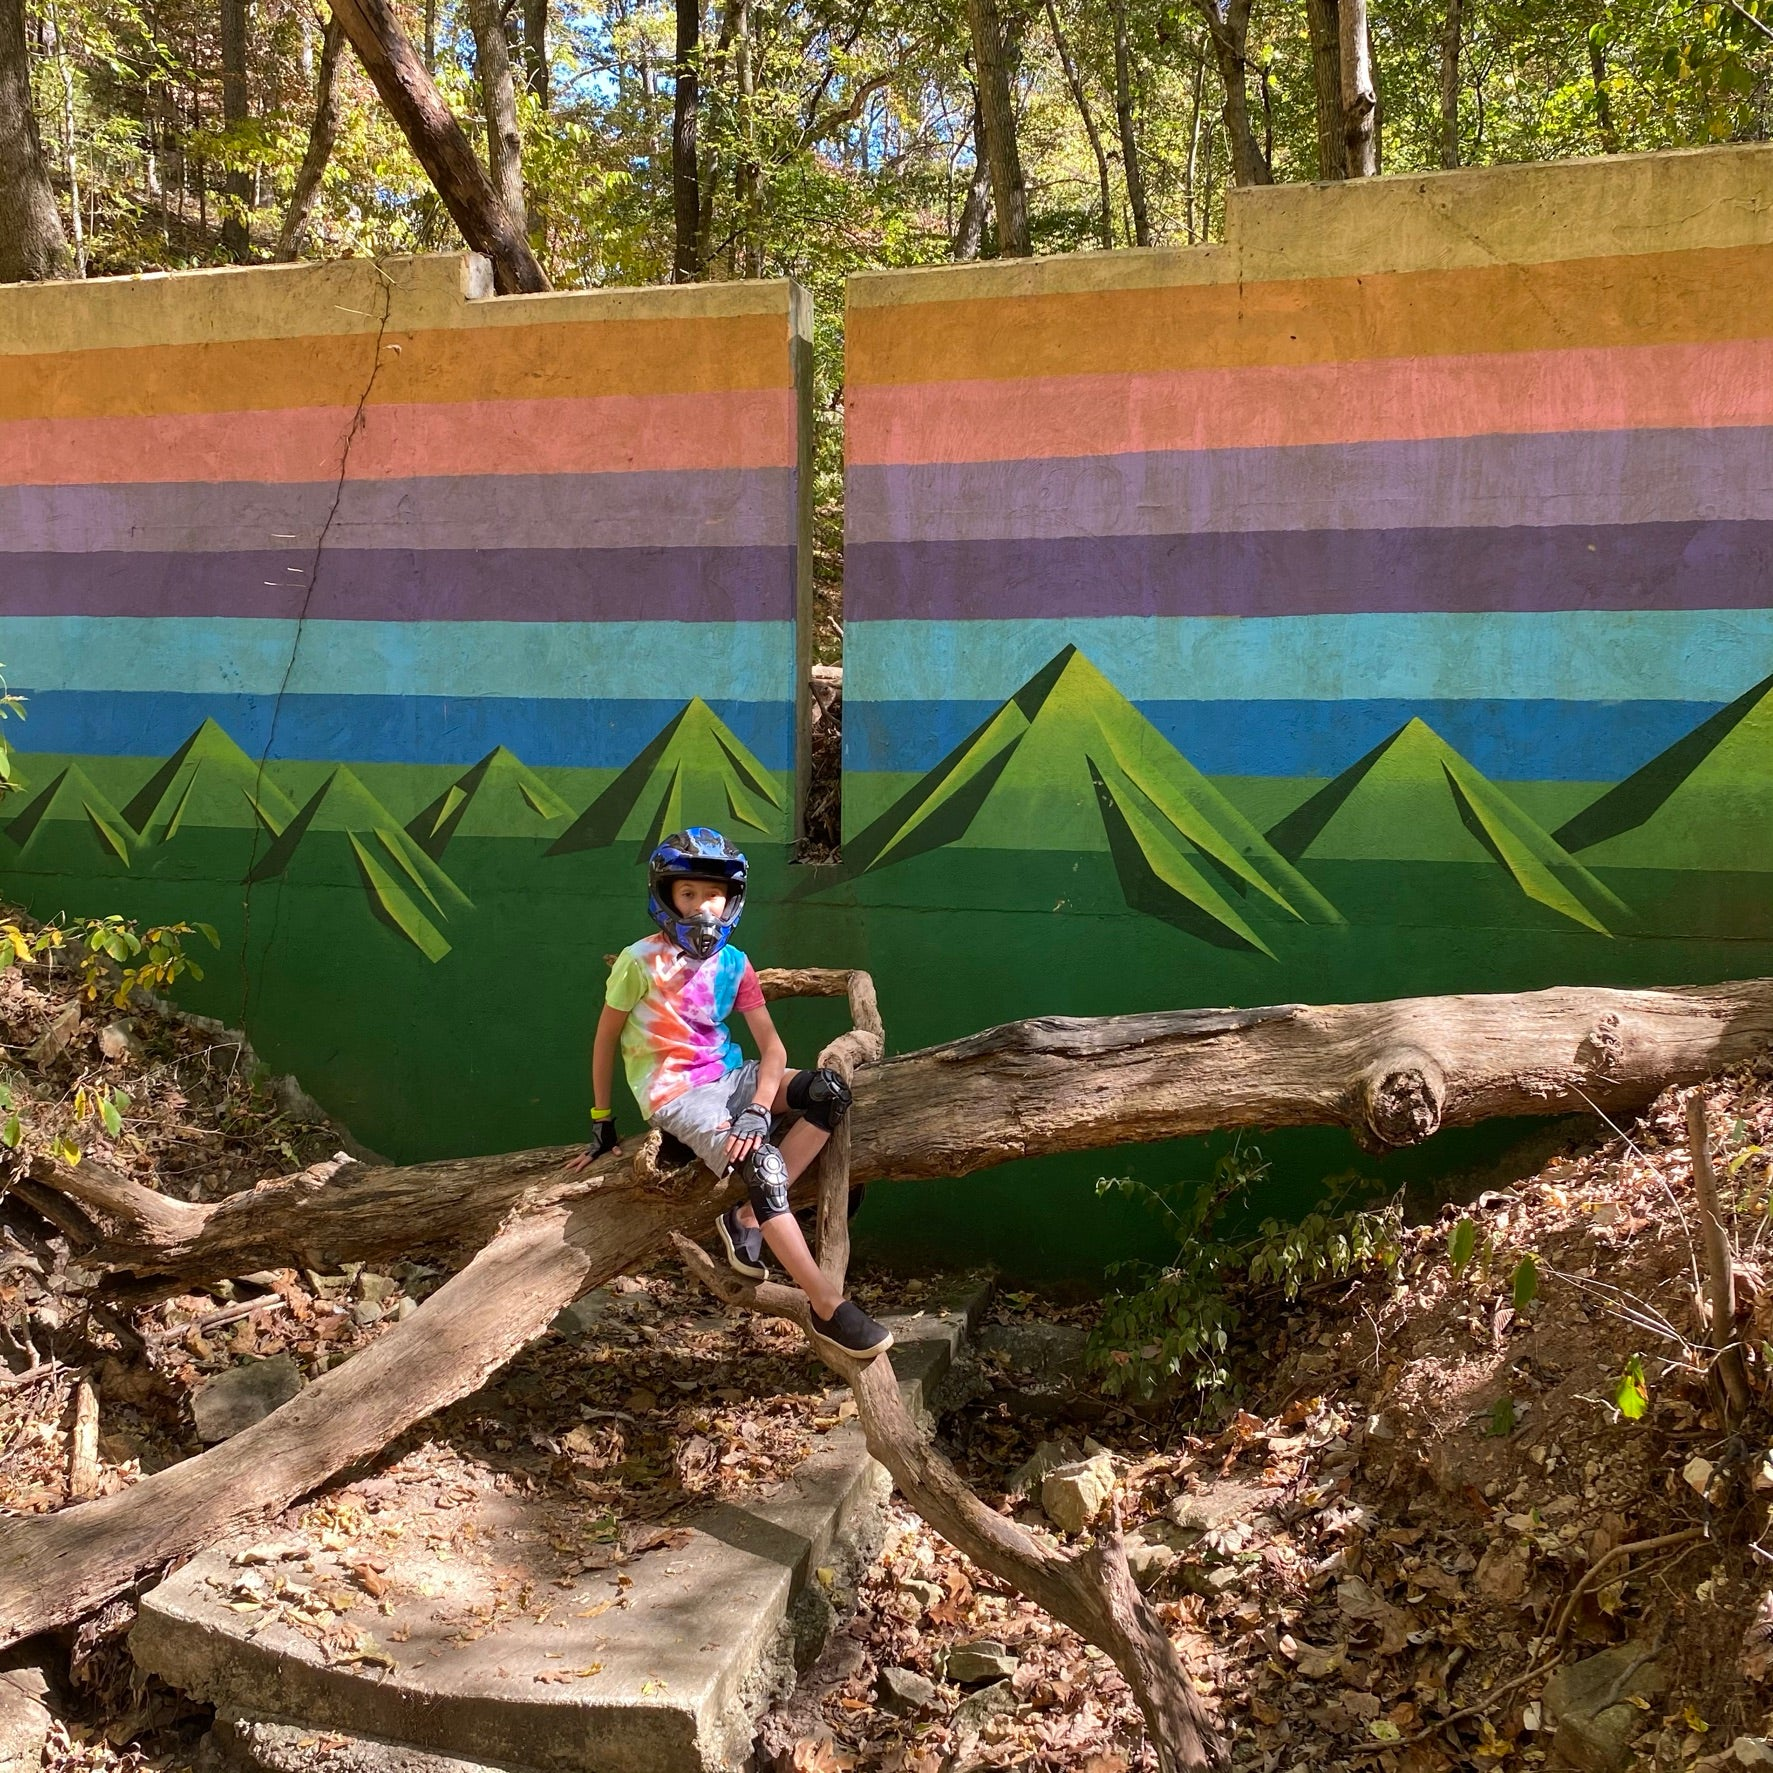 Famous OZ Trails colorful landscape logo mural on Tristan's Trail at Slaughter Pen